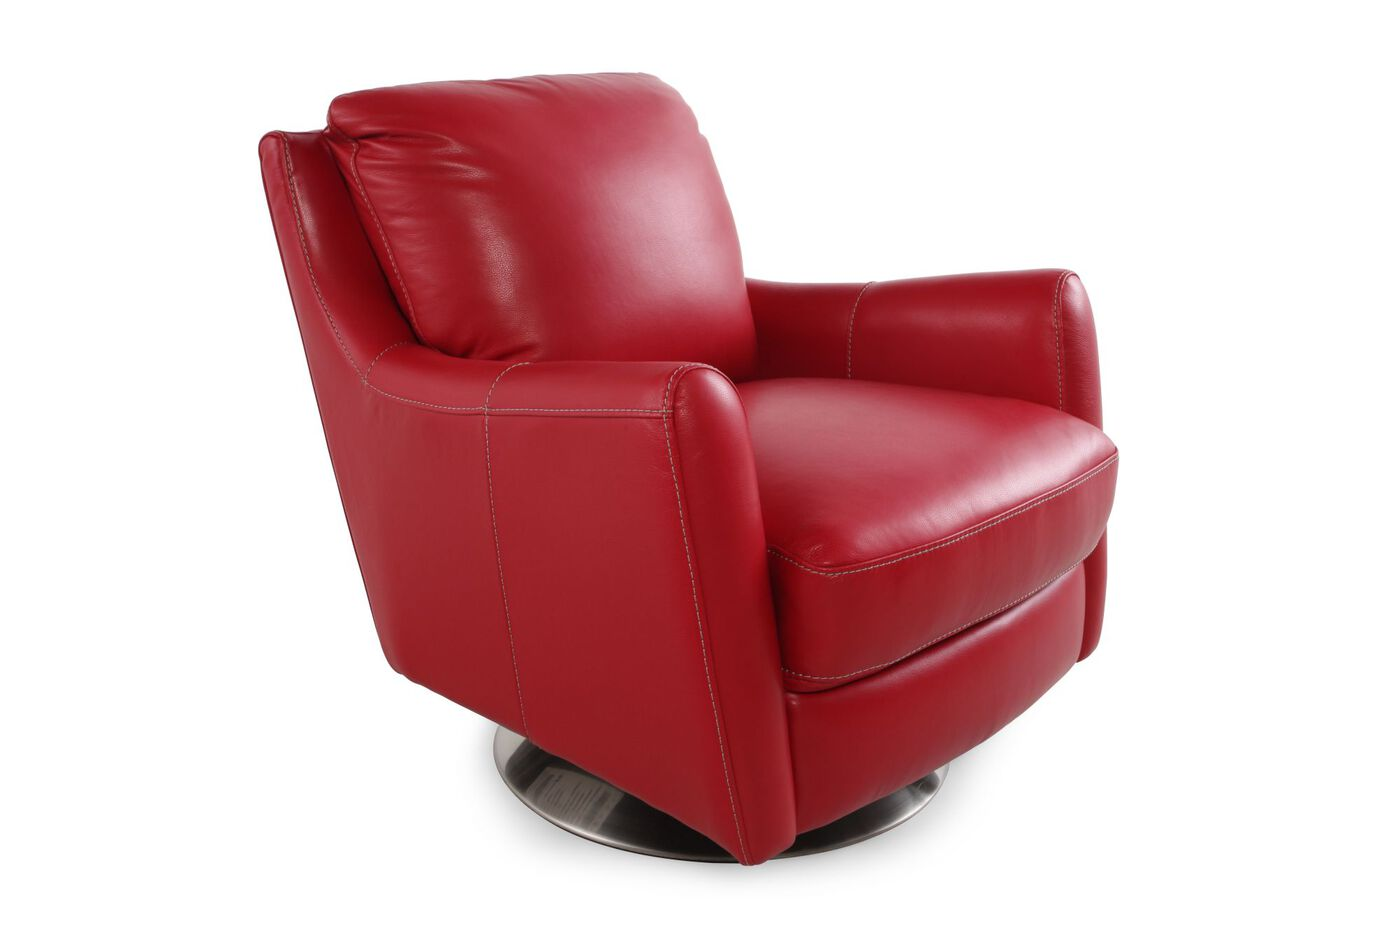 Lazboy Xavier Red Leather Swivel Chair  Mathis Brothers. Dorm Room Items. Interior Design Study Room. Dining Room Furniture San Diego. Drop Leaf Dining Room Table. Cleaning Room Games. Dressing Rooms Design. Kitchen Living Room Design. Un Delegates Dining Room